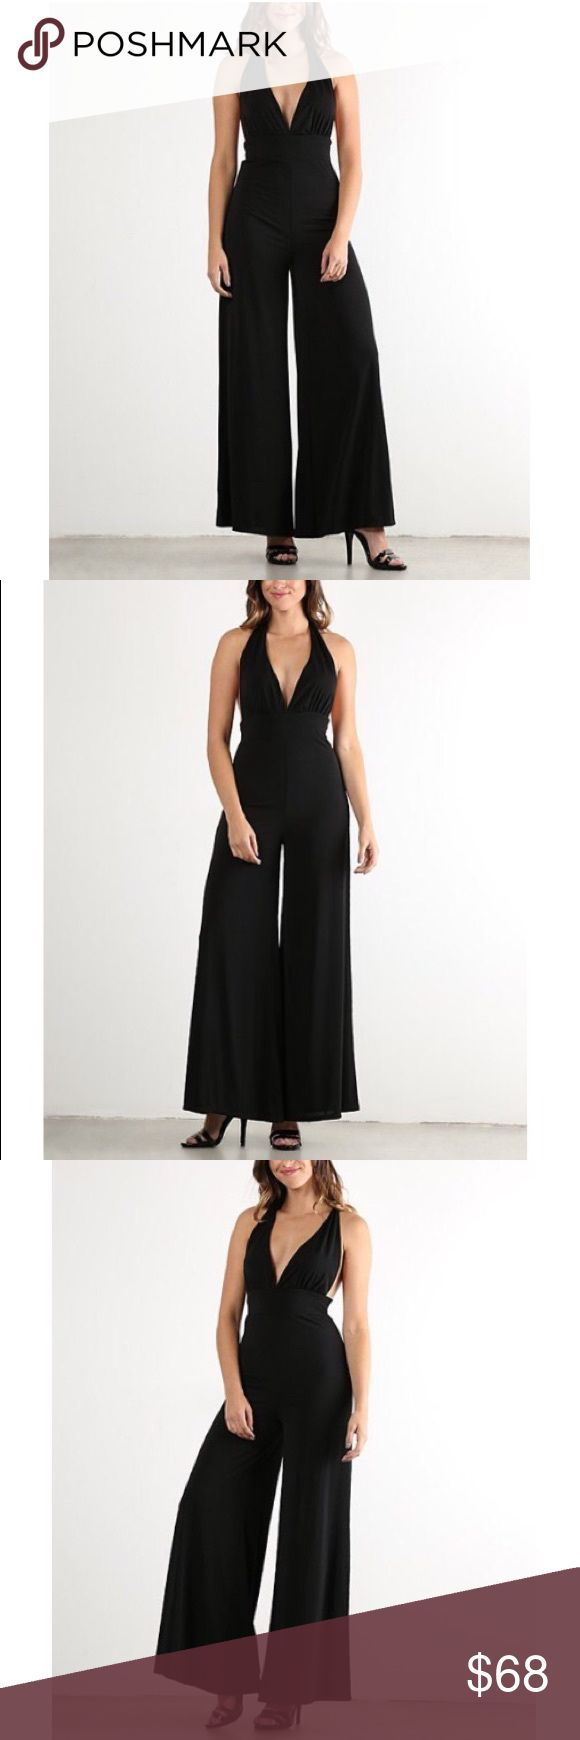 Black Plunge Deep V Halter Jumpsuit This jumpsuit is so classy and breezy. It's style is versatile as it can be worn to a date or just on the beach. Pair with a gorgeous pair of strappy heels and you're all set for your date or special occasion OR simply wear a nice pair of flip flops and a floppy hat and #beachplease! While you're deciding which look you want to go for, feel free to make an offer! 😉 J-Mode Pants Jumpsuits & Rompers